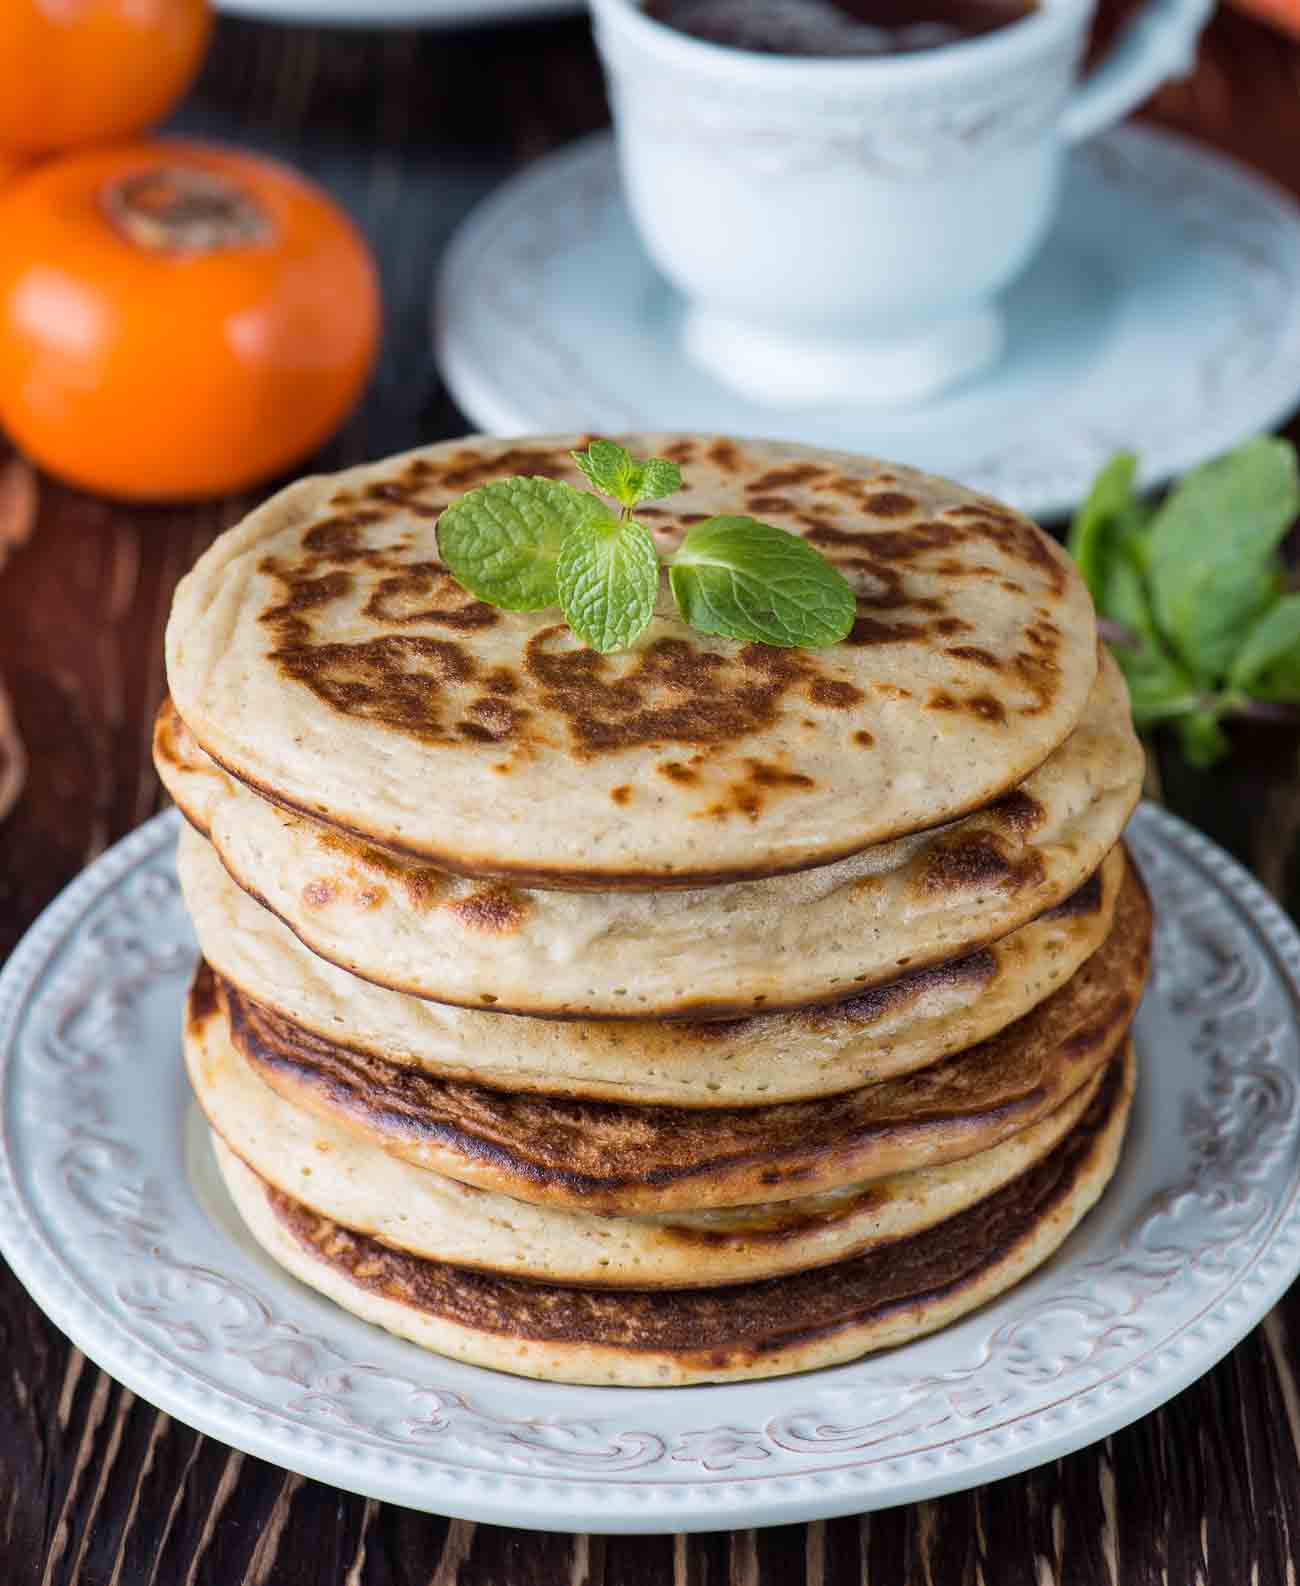 Oatmeal Pancake Recipe With Orange